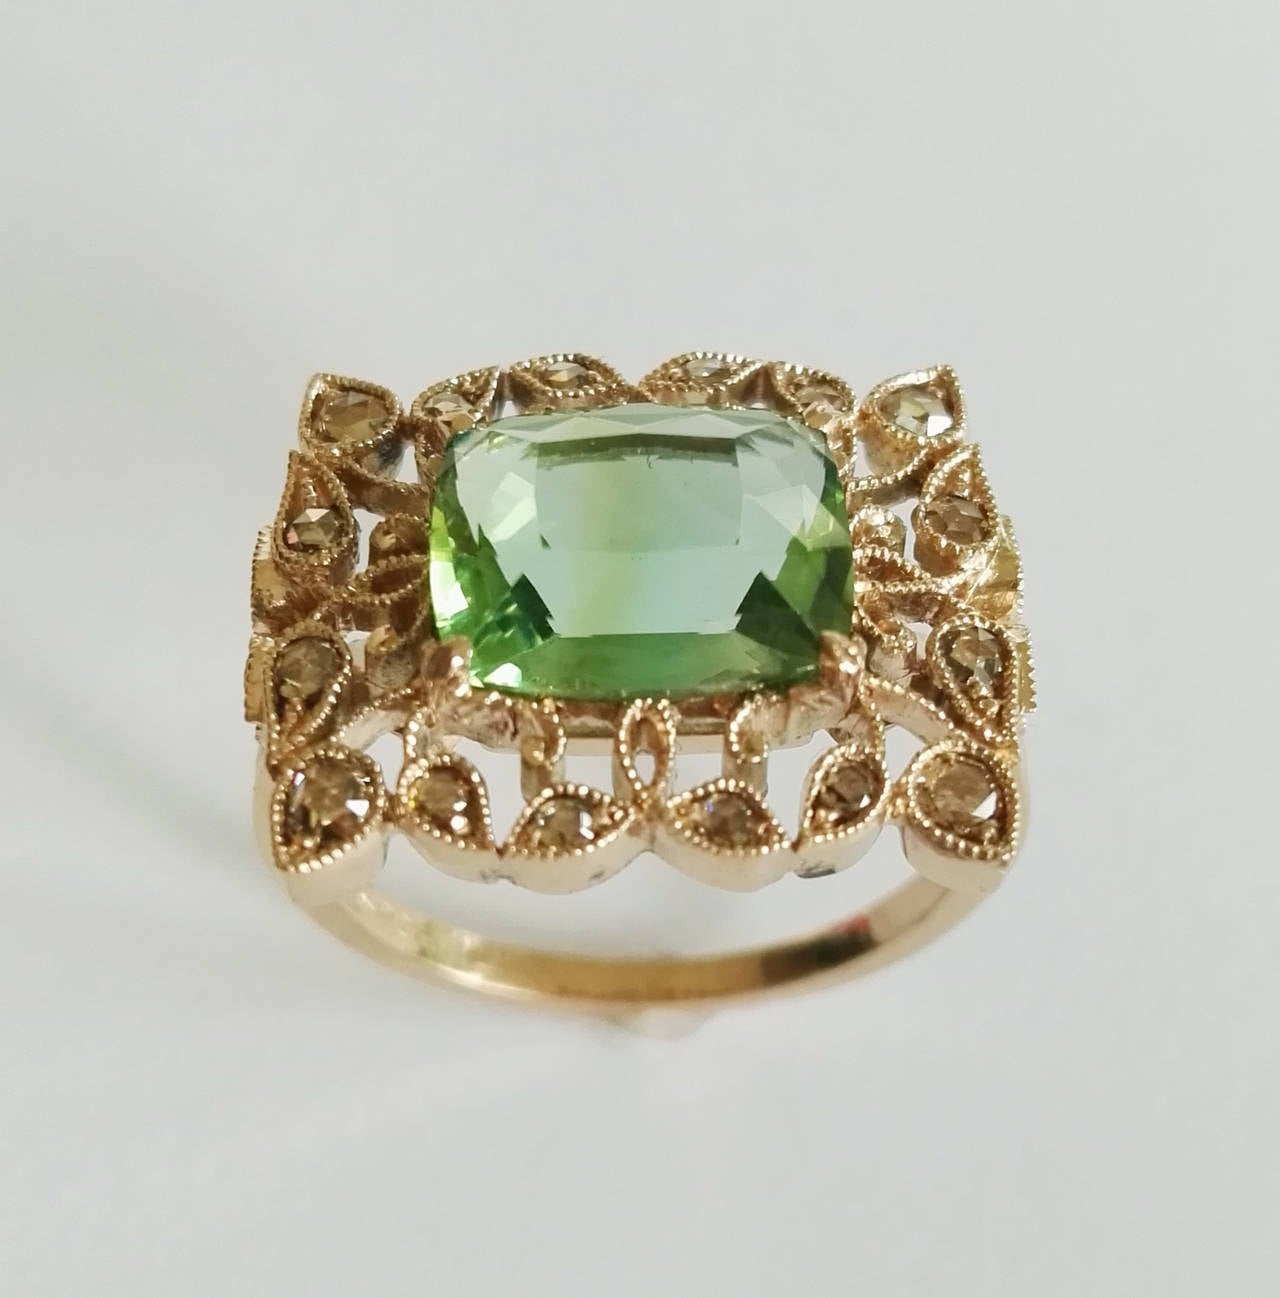 Dalben design fashion ring mounted in 18 kt white gold with one Cushion cut Green Tourmaline weighting 3,14 carat and 22 rose cut light brown Diamonds weighing 0,44 carats.